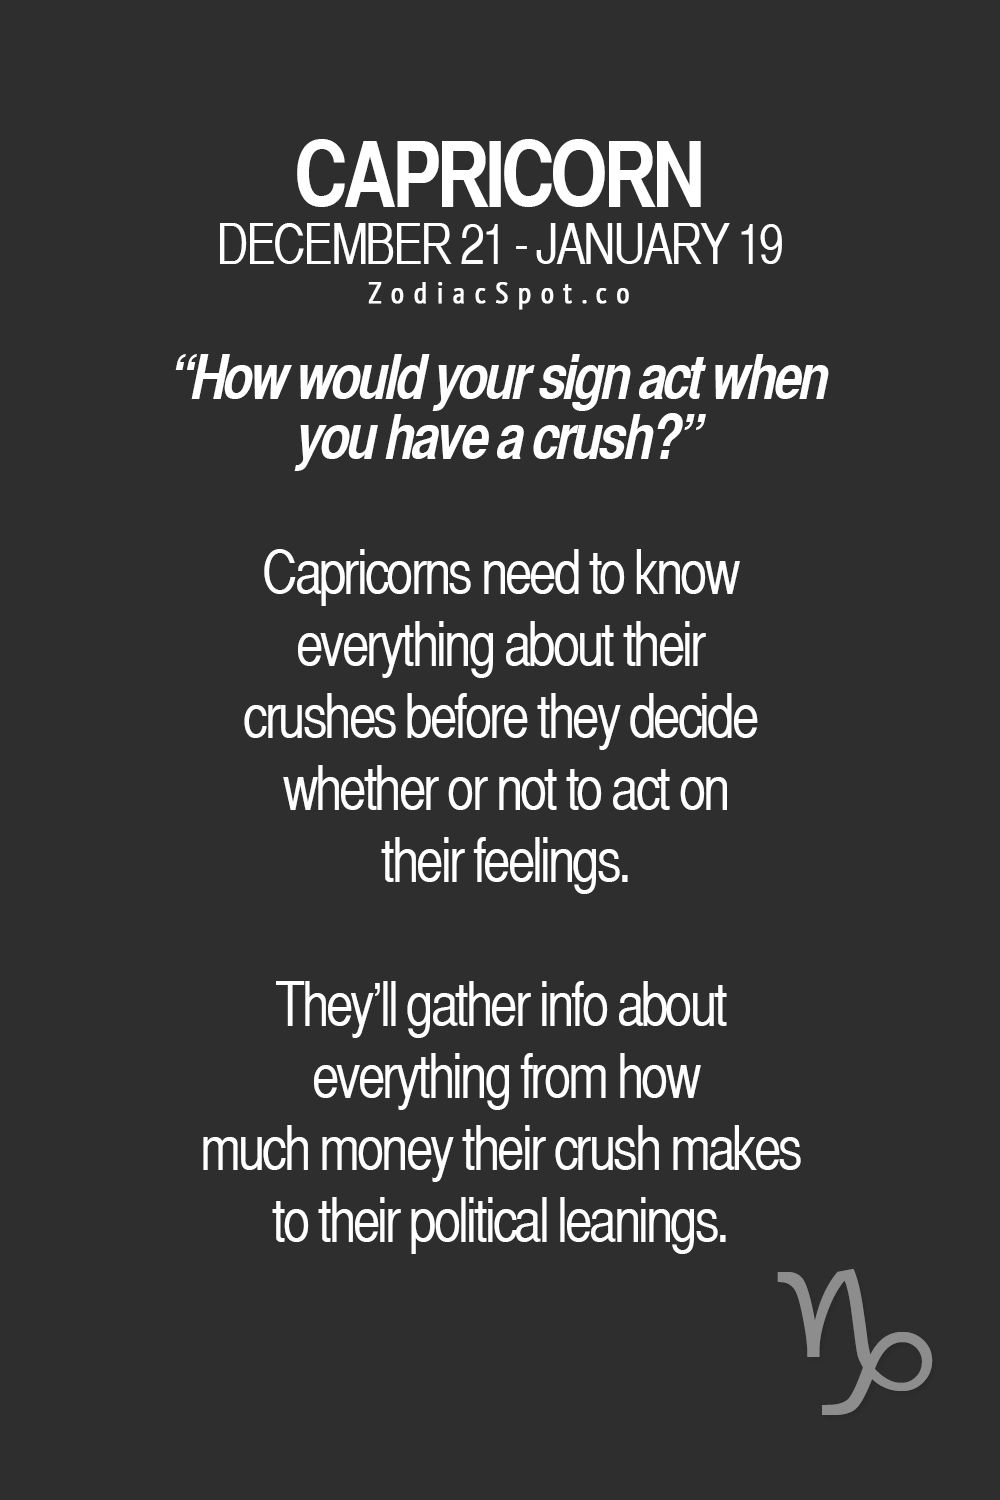 zodiacspot: How would your sign act when you have a crush